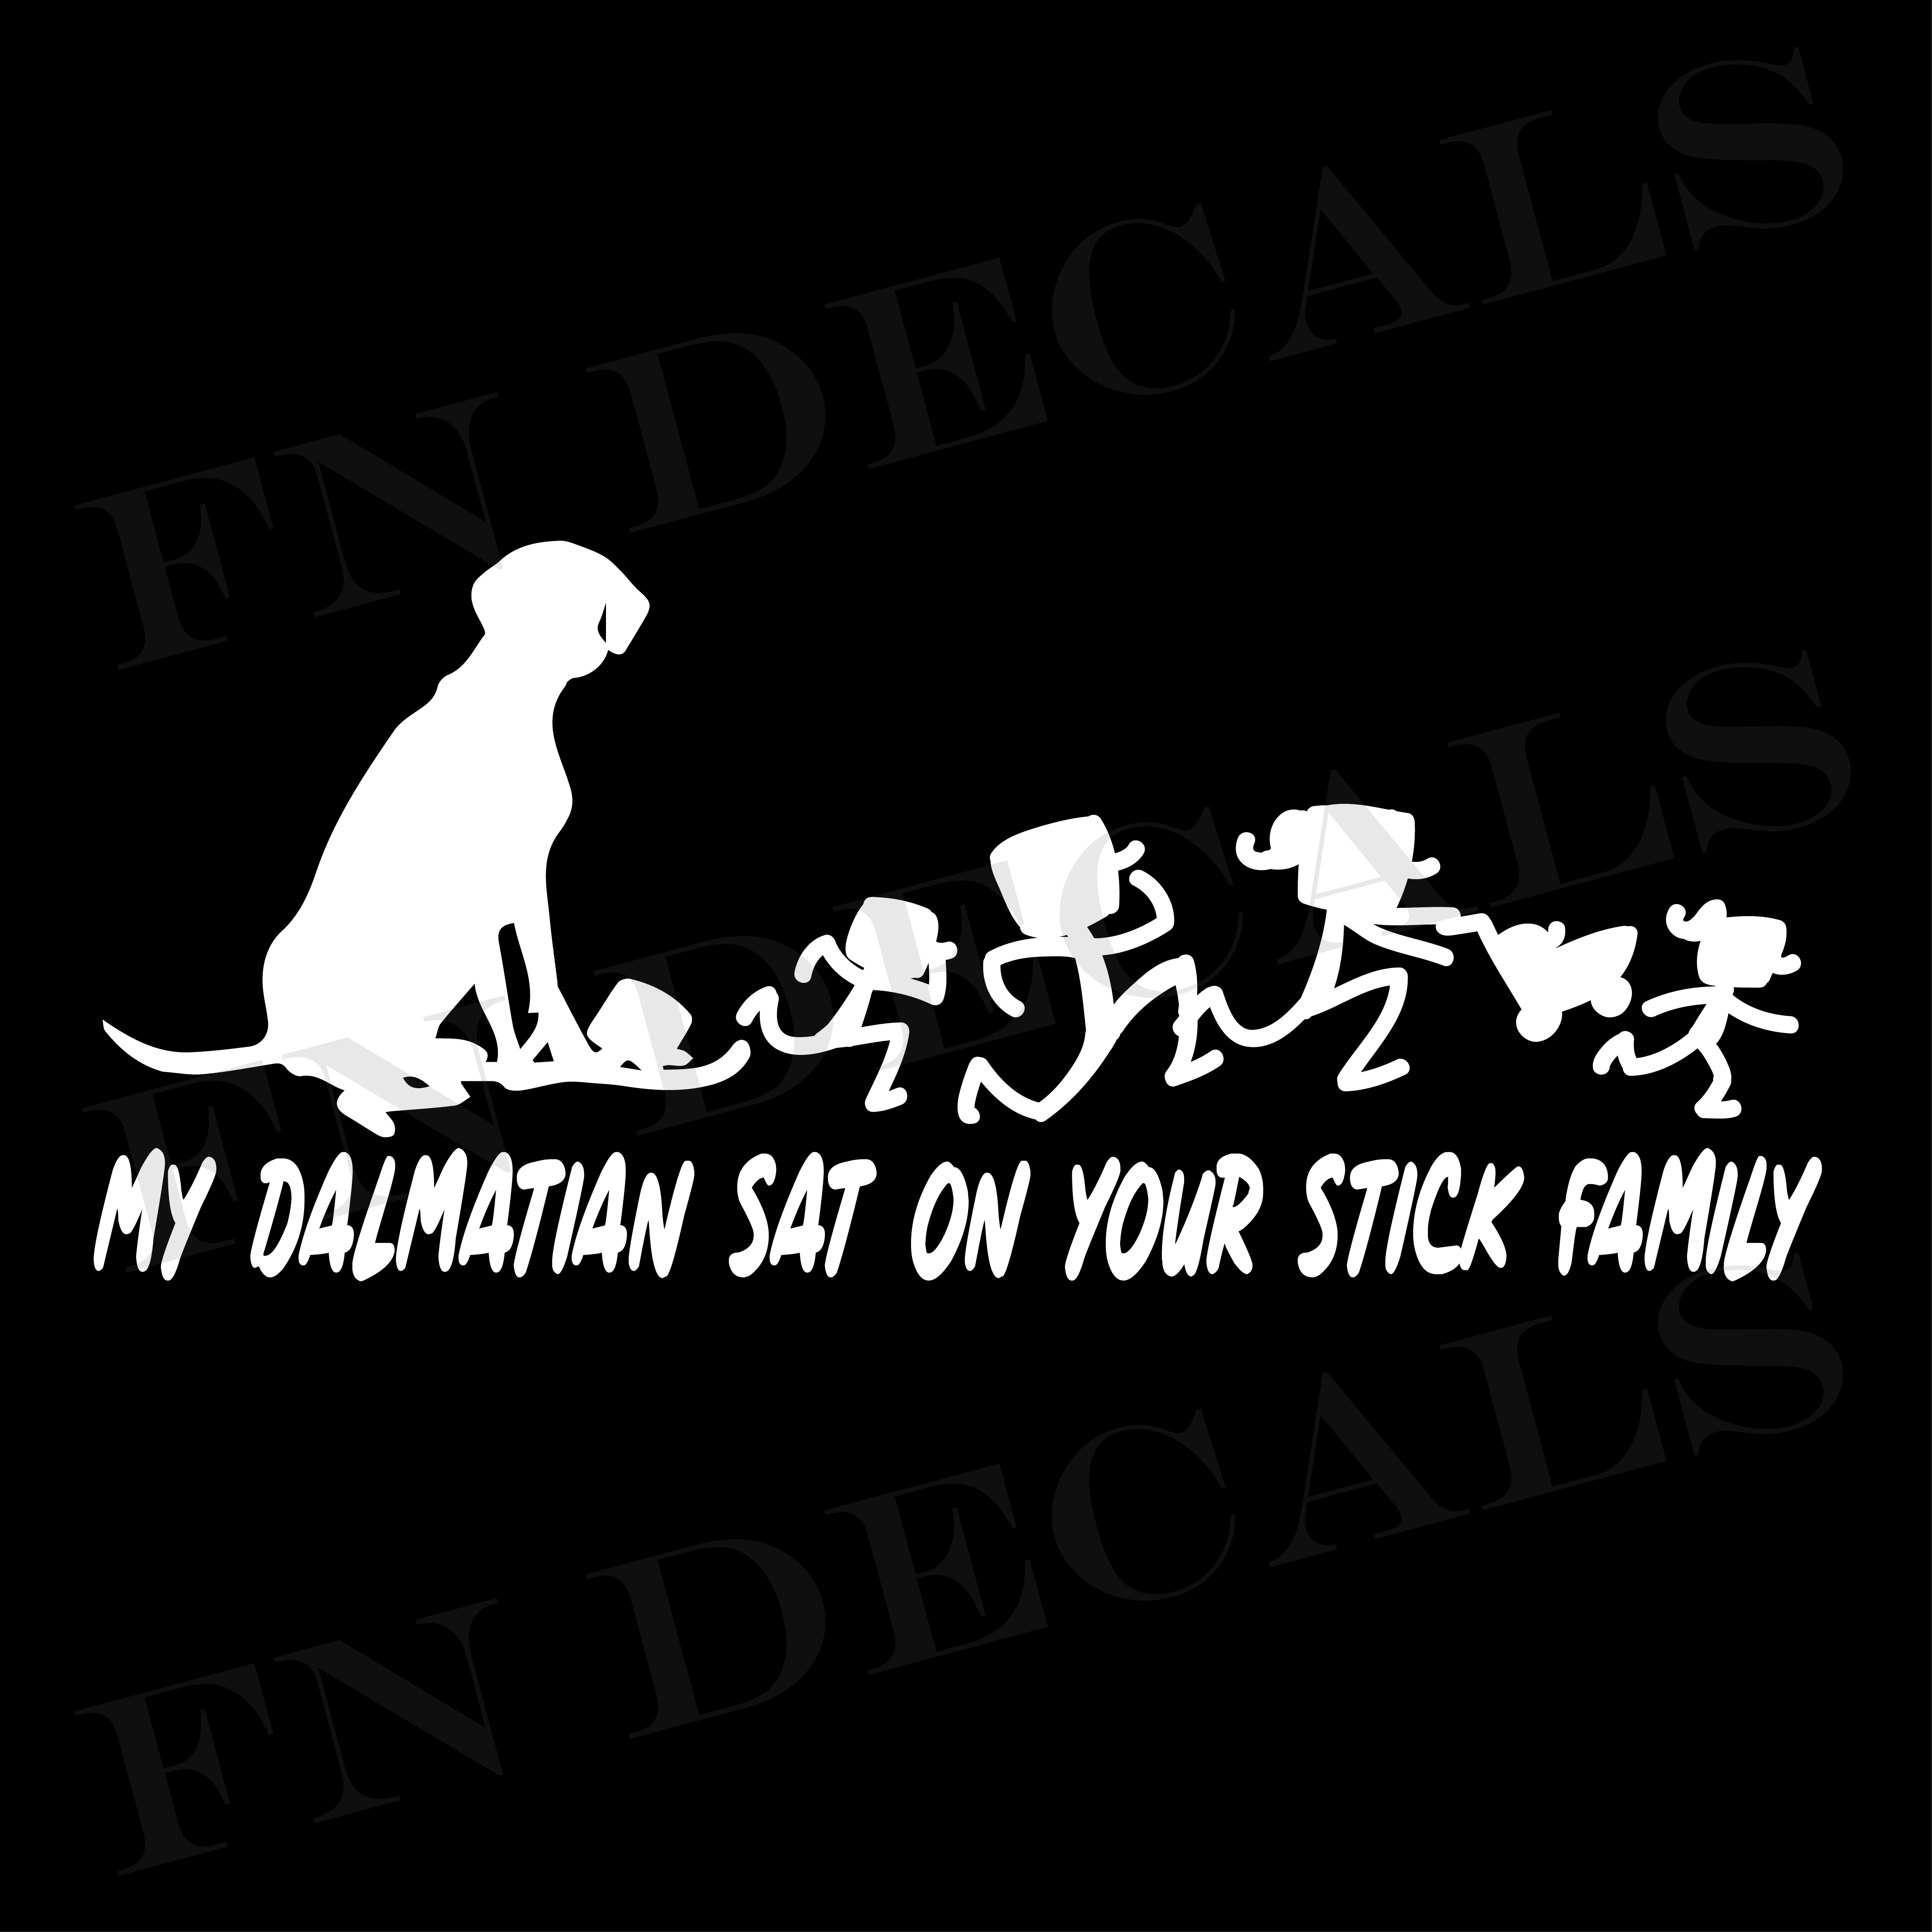 My Dalmatian Sat on Your Stick Family Custom Car Window Vinyl Decal - FN Decals